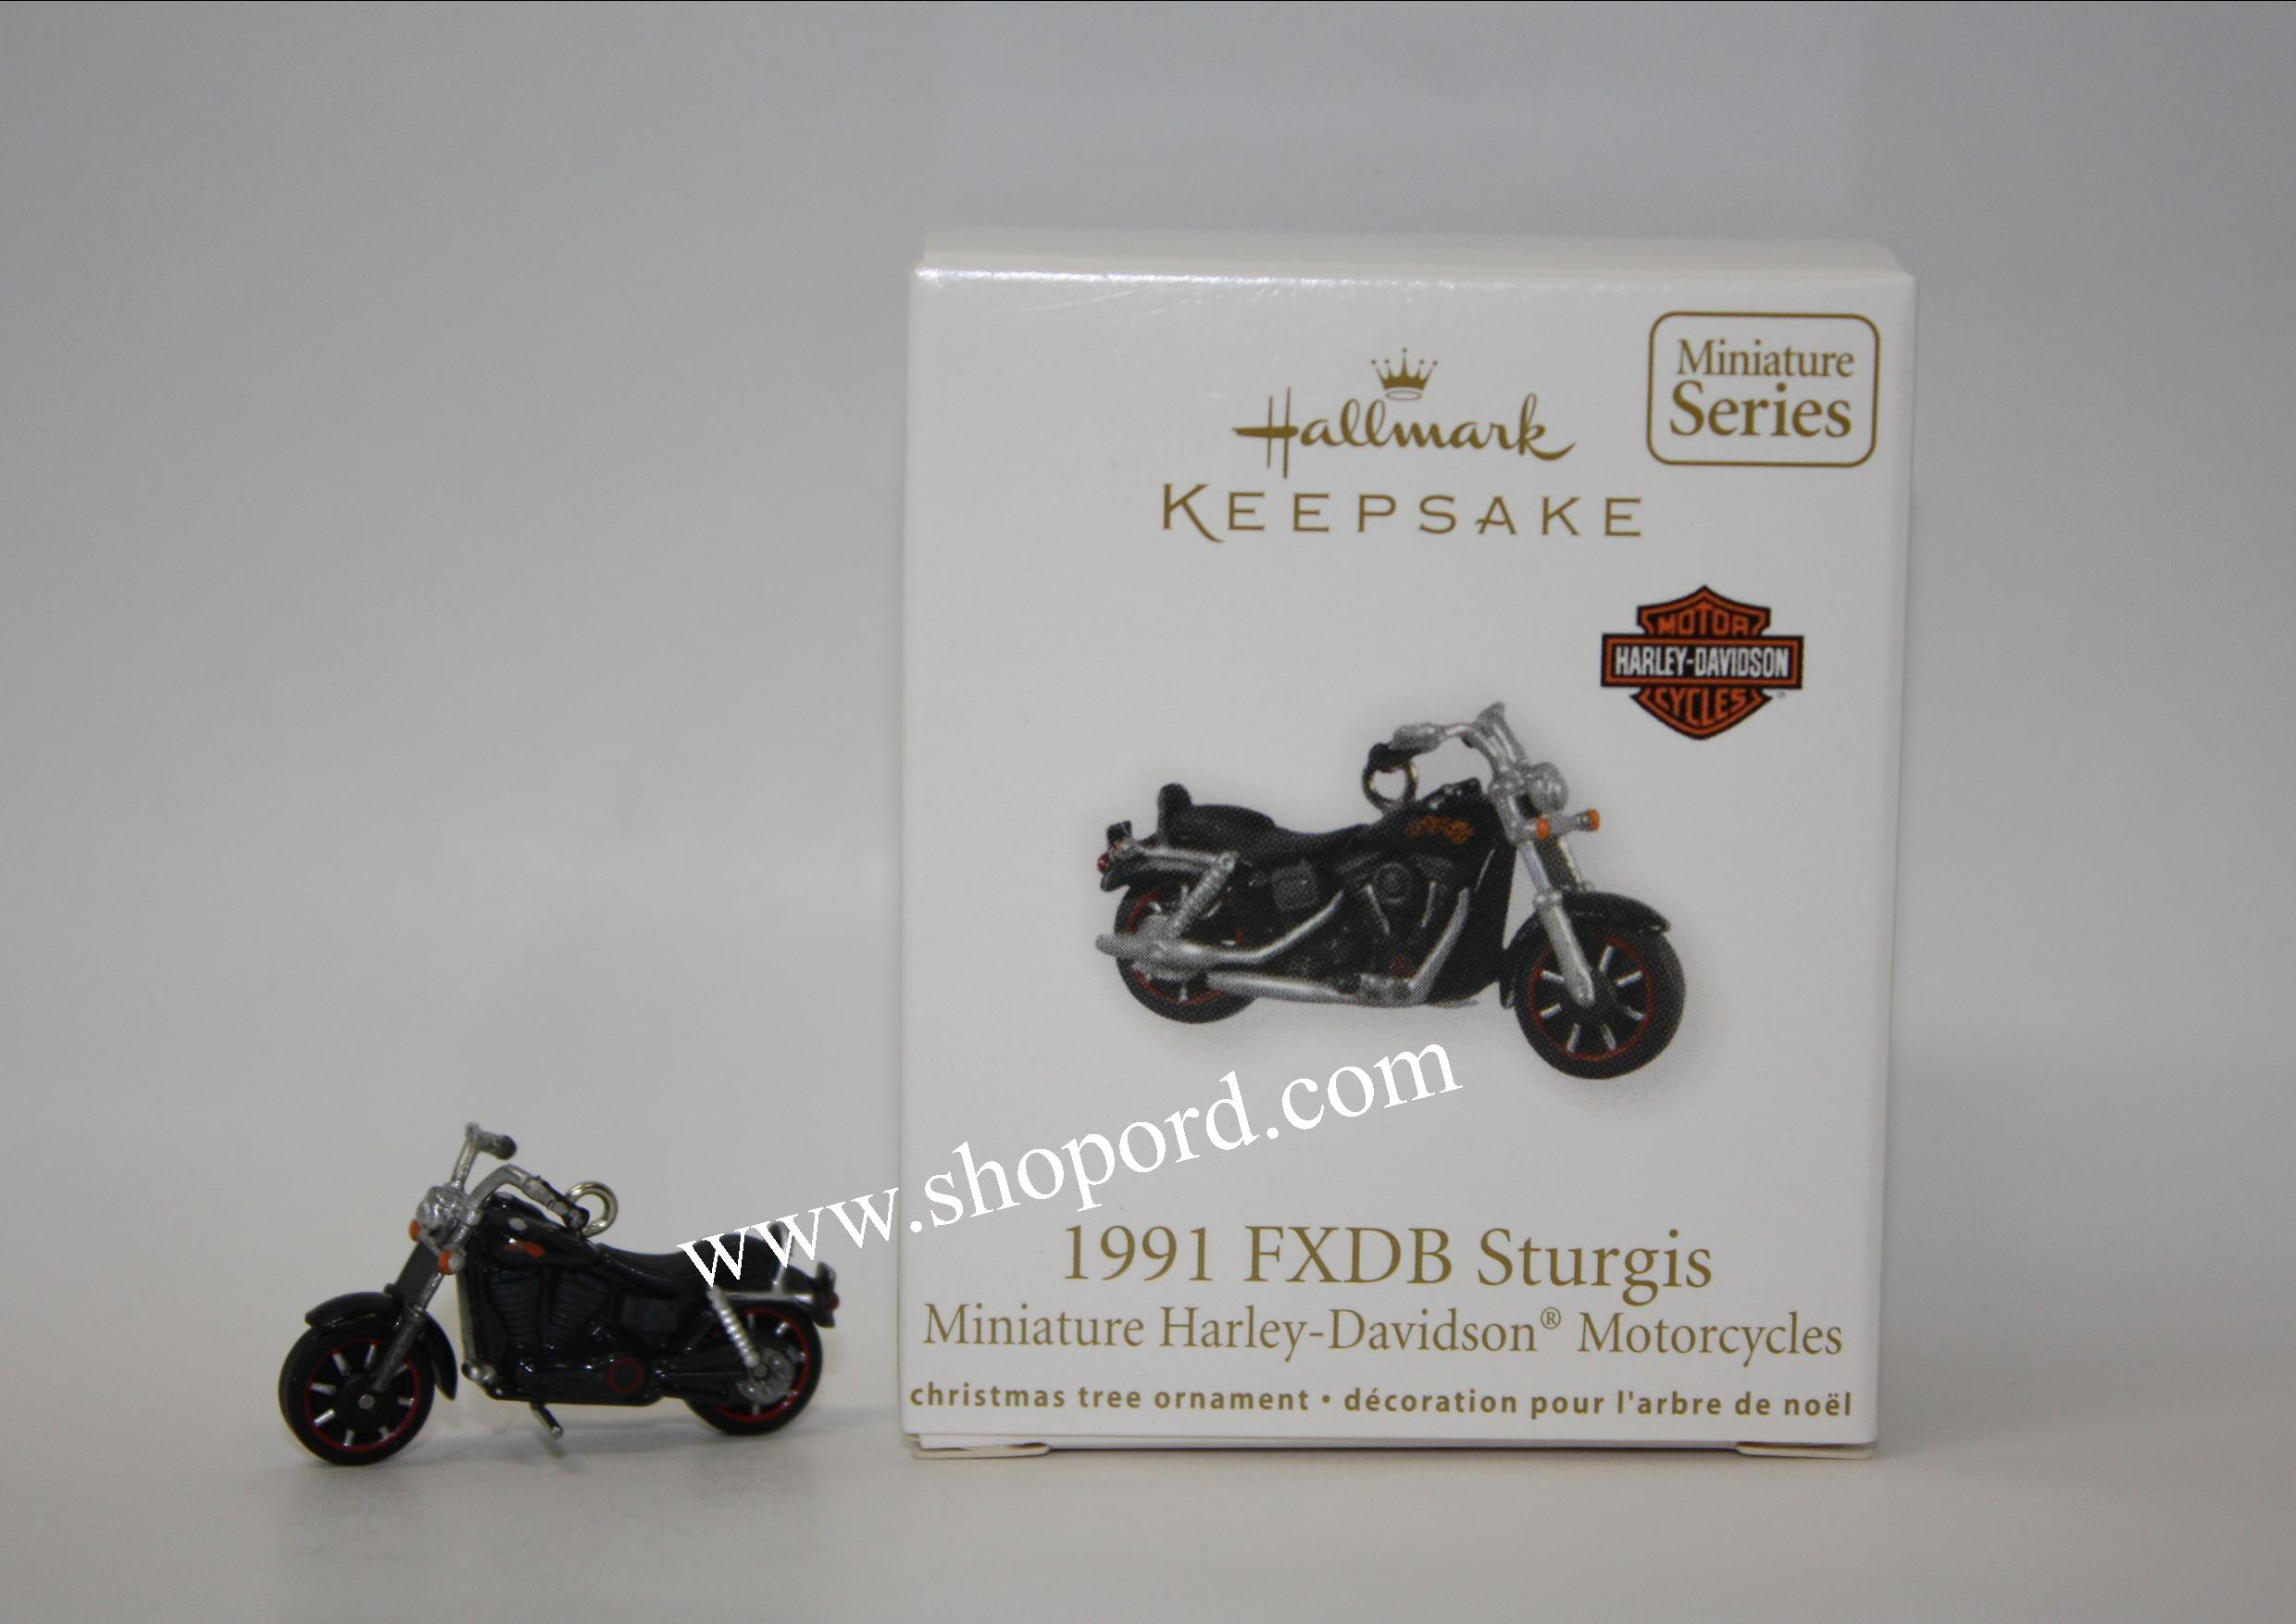 Hallmark 2011 FXDB 1991 Sturgis Miniature Ornament 13th in